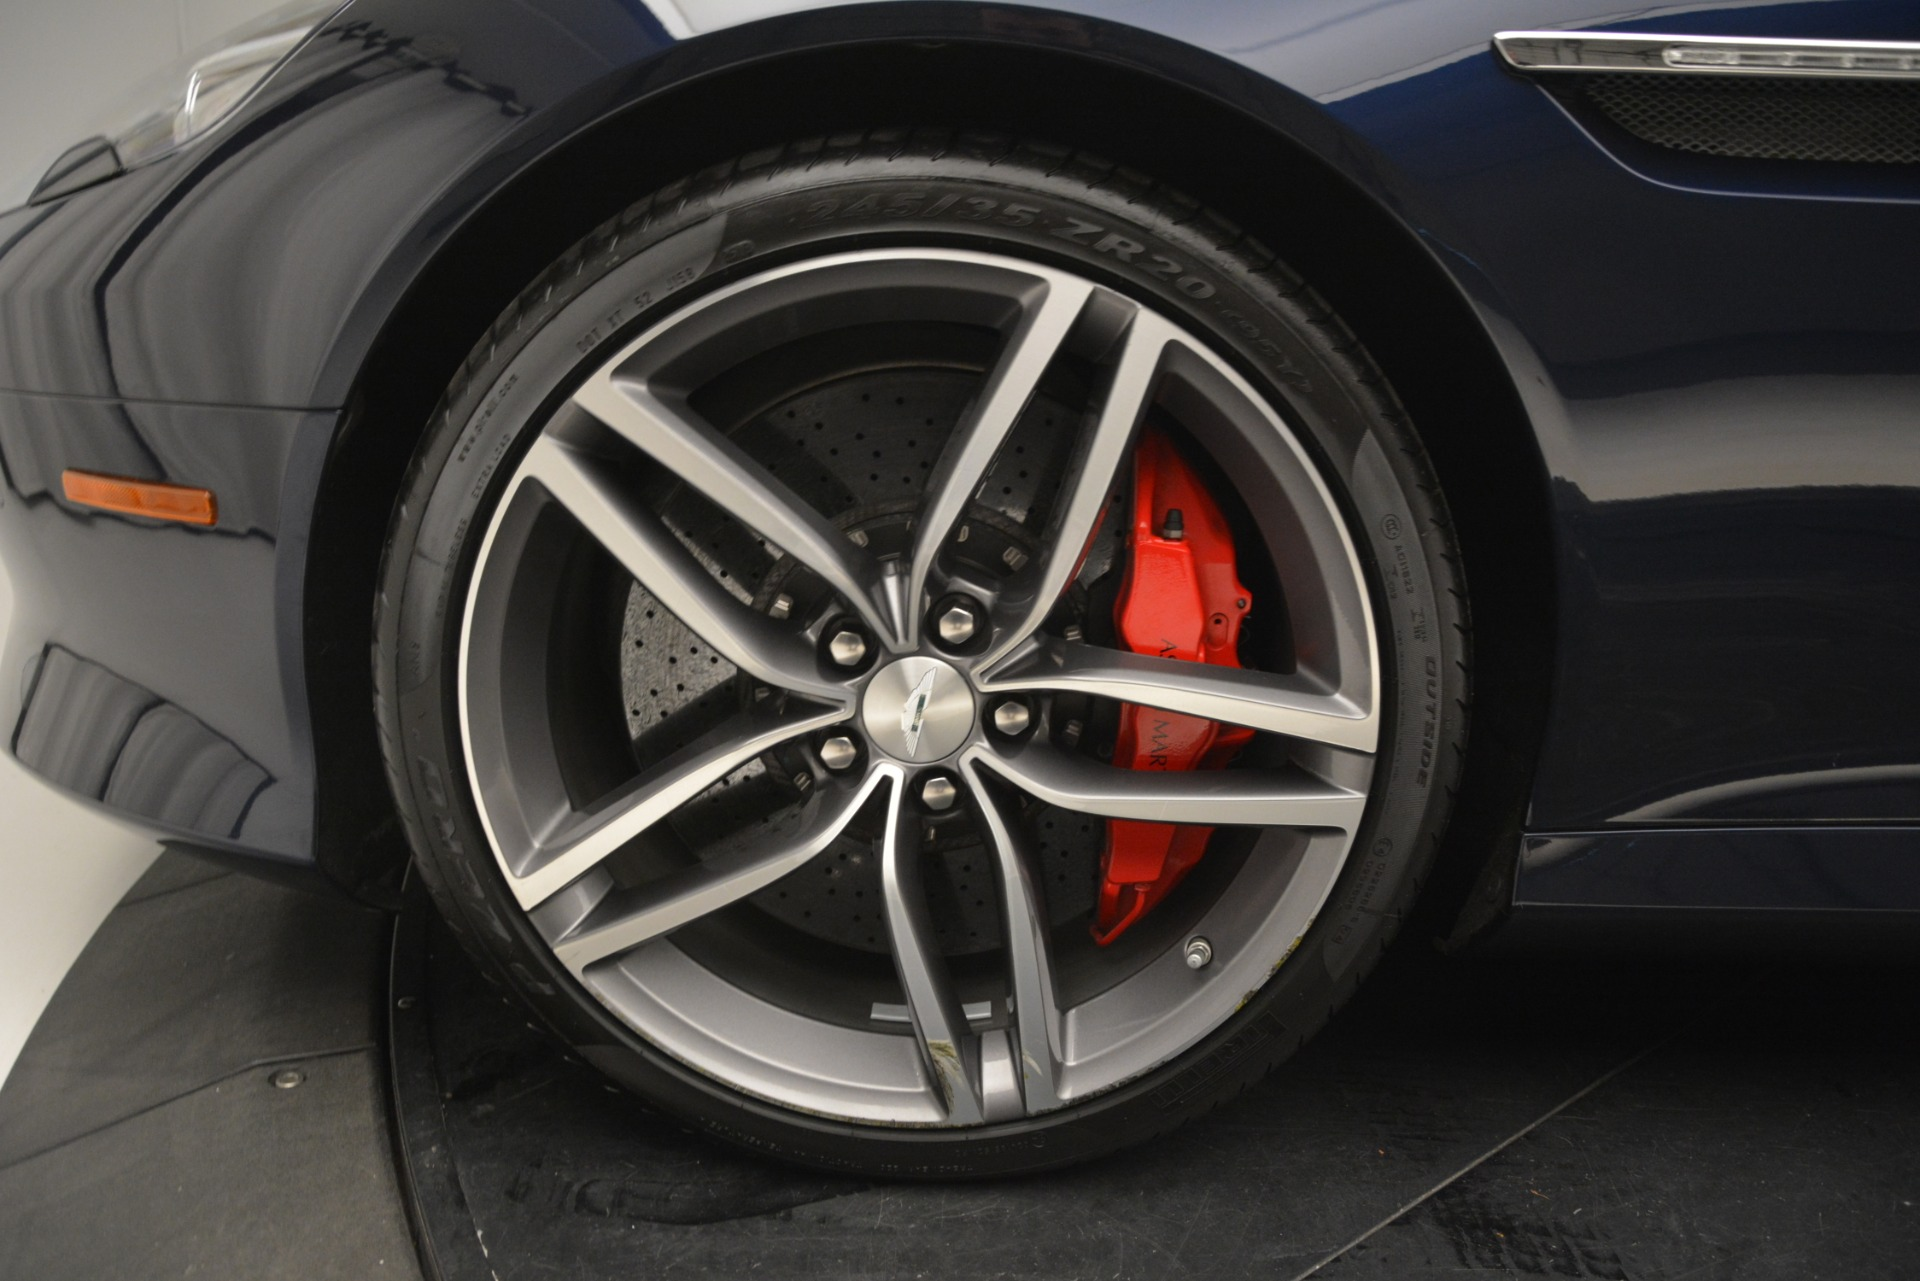 Used 2014 Aston Martin DB9 Coupe For Sale In Westport, CT 3010_p13